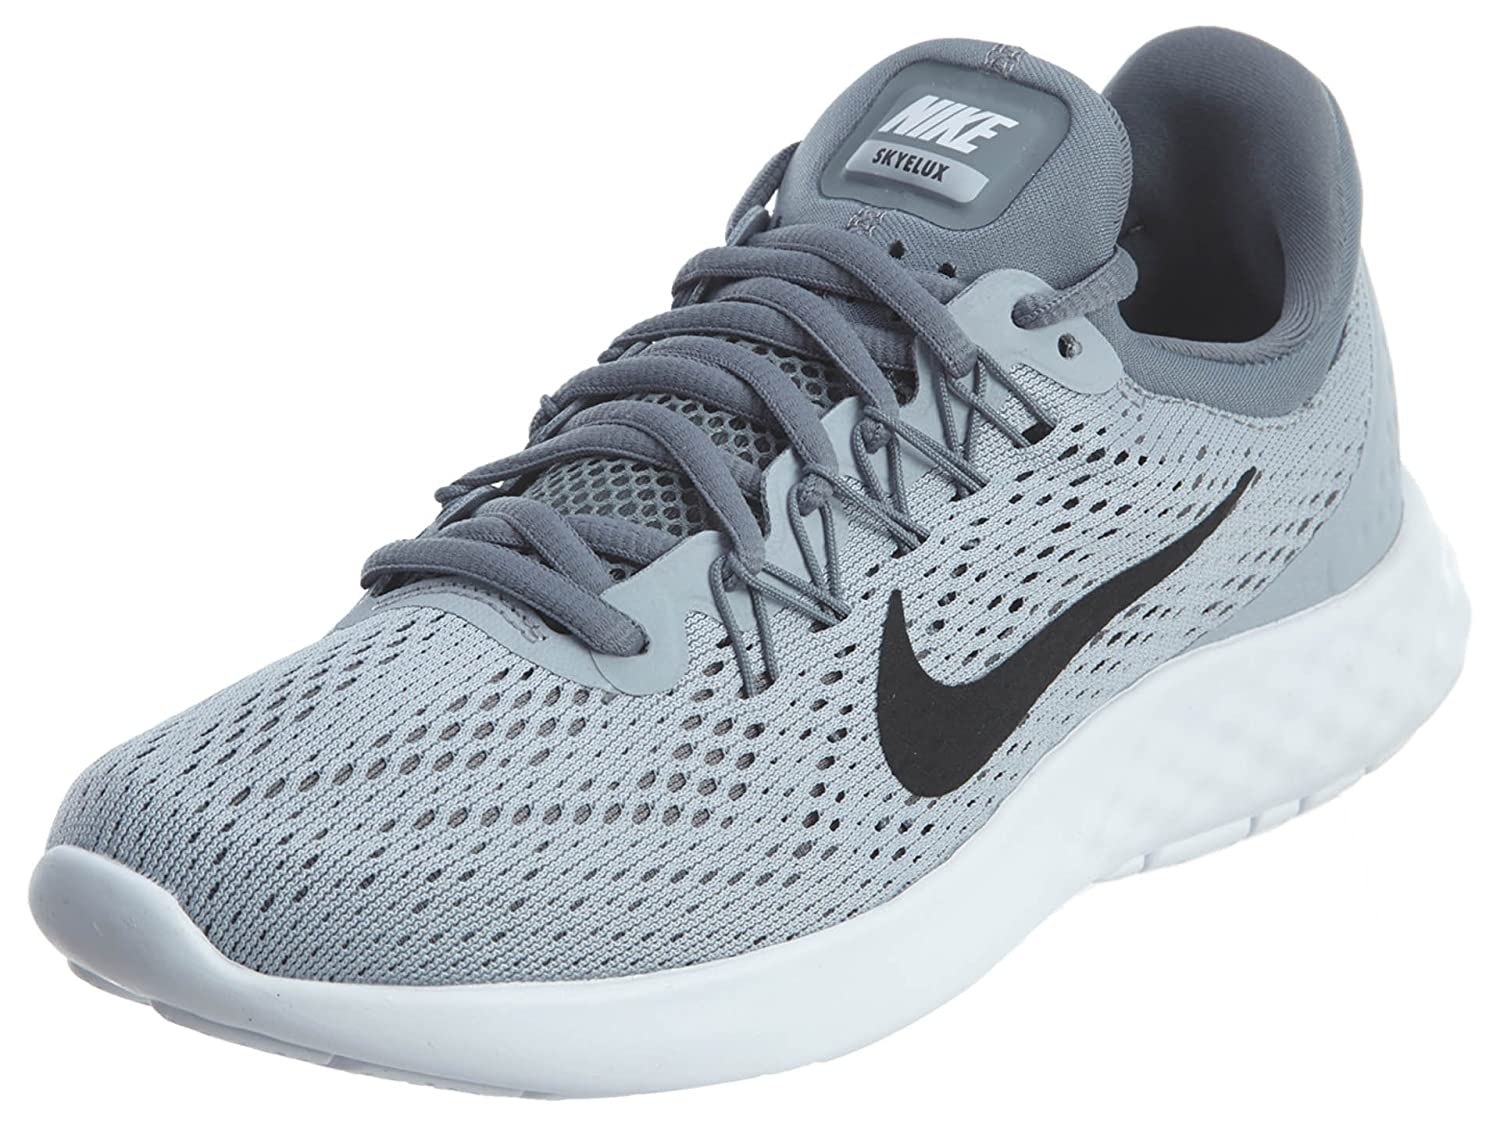 NIKE Womens Lunar Skyelux Round Toe Lace-up Running Shoes B01K2MY92U 8.5 B(M) US|Wolf Grey/Black/Cool Grey/White